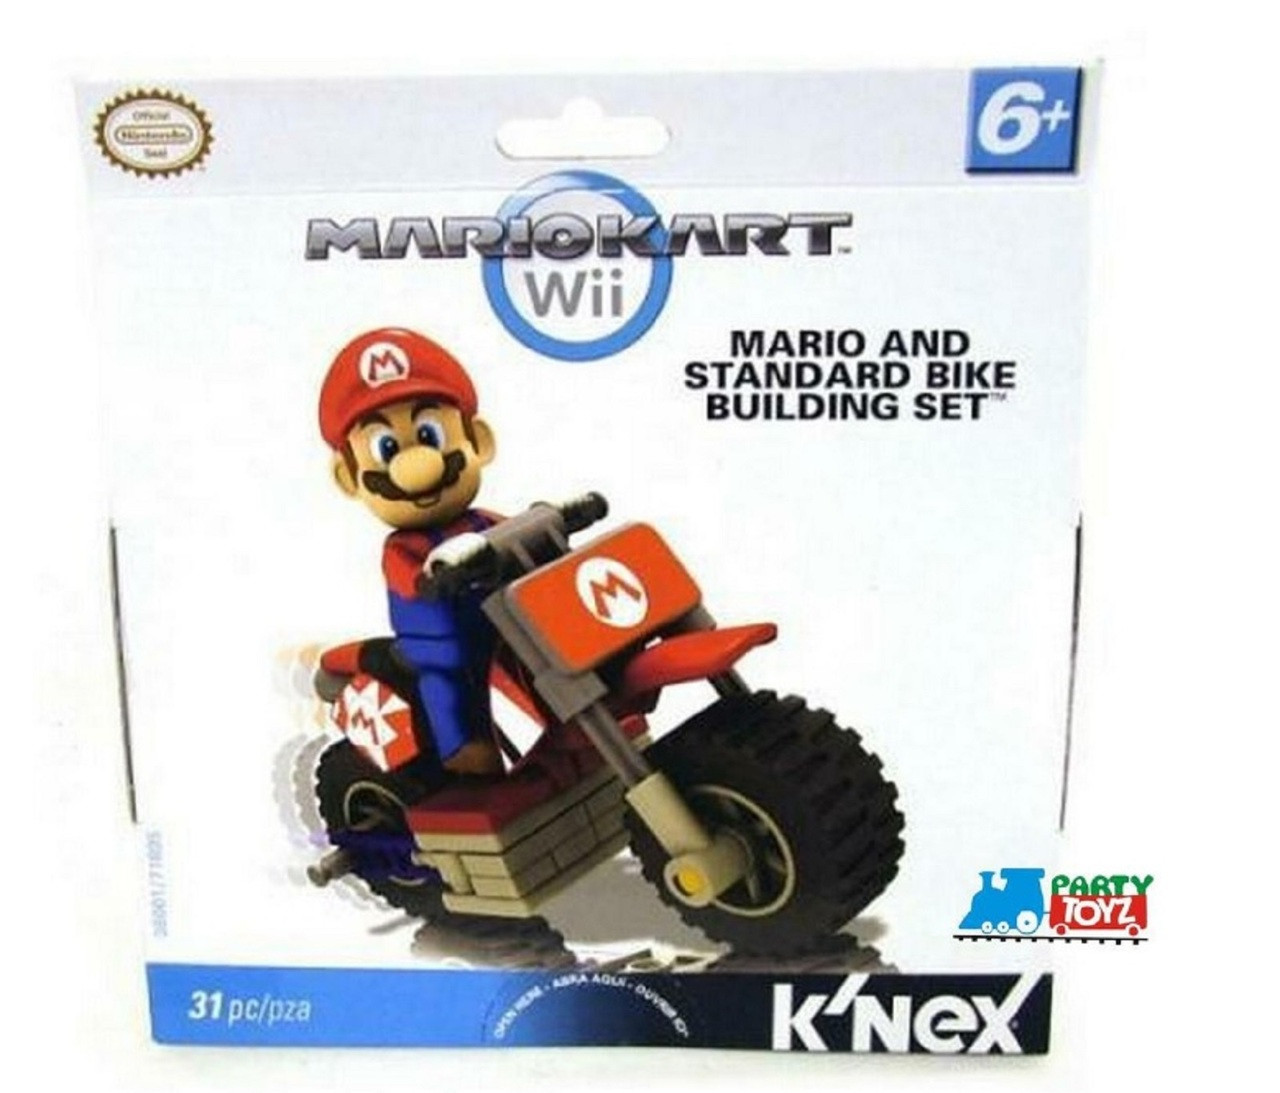 Super Mario Bros LEGO Knex Mariokart Bike Building Set 31pcs